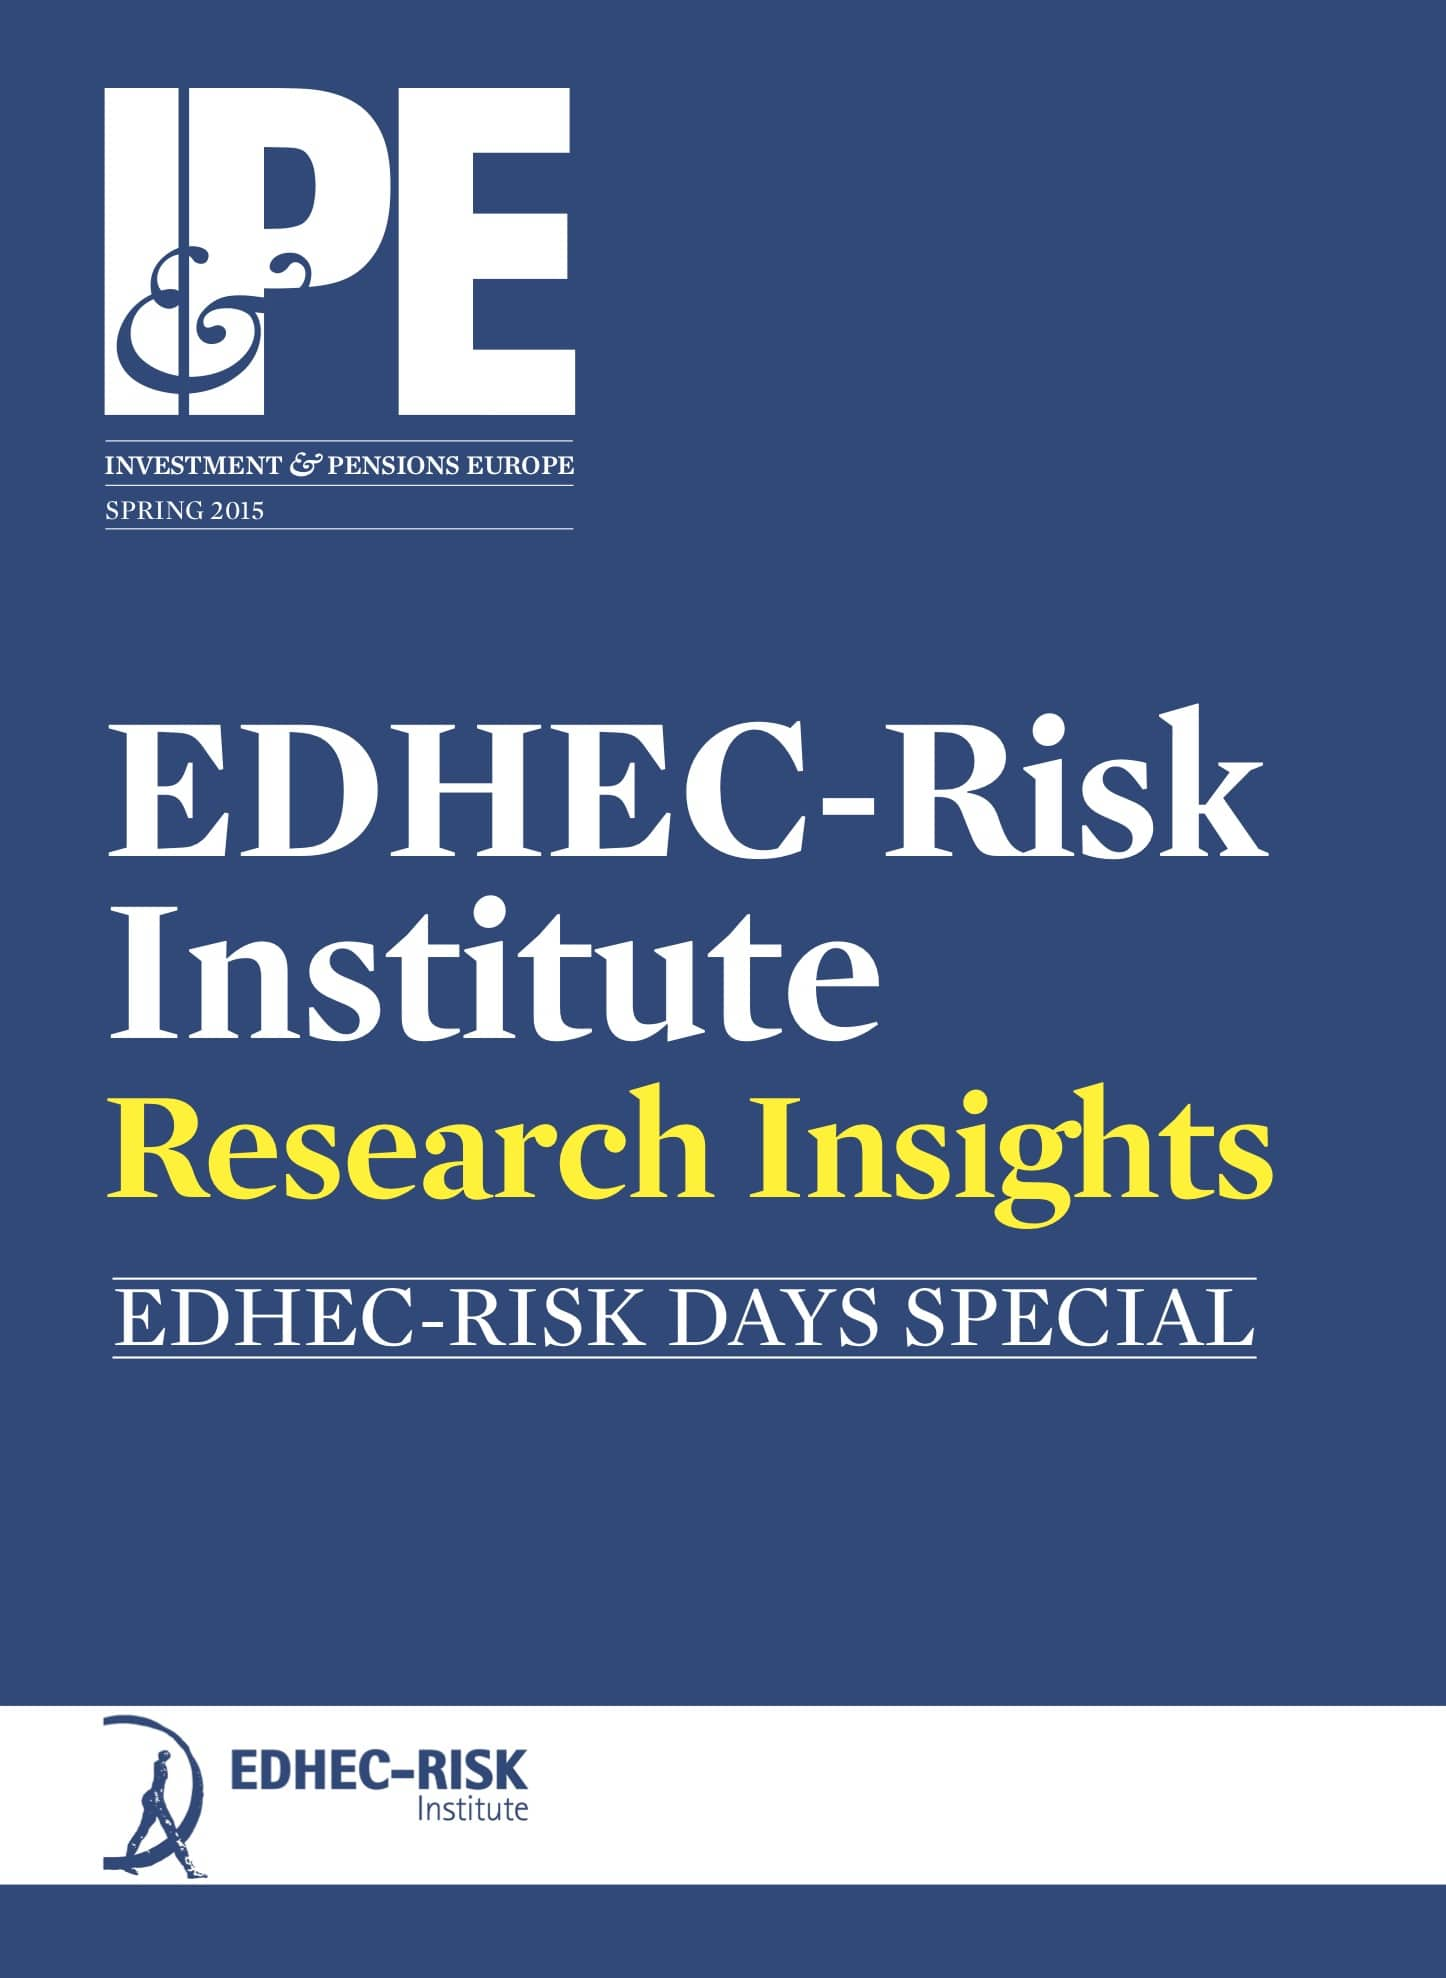 2015 EDHEC-Risk Research Insights